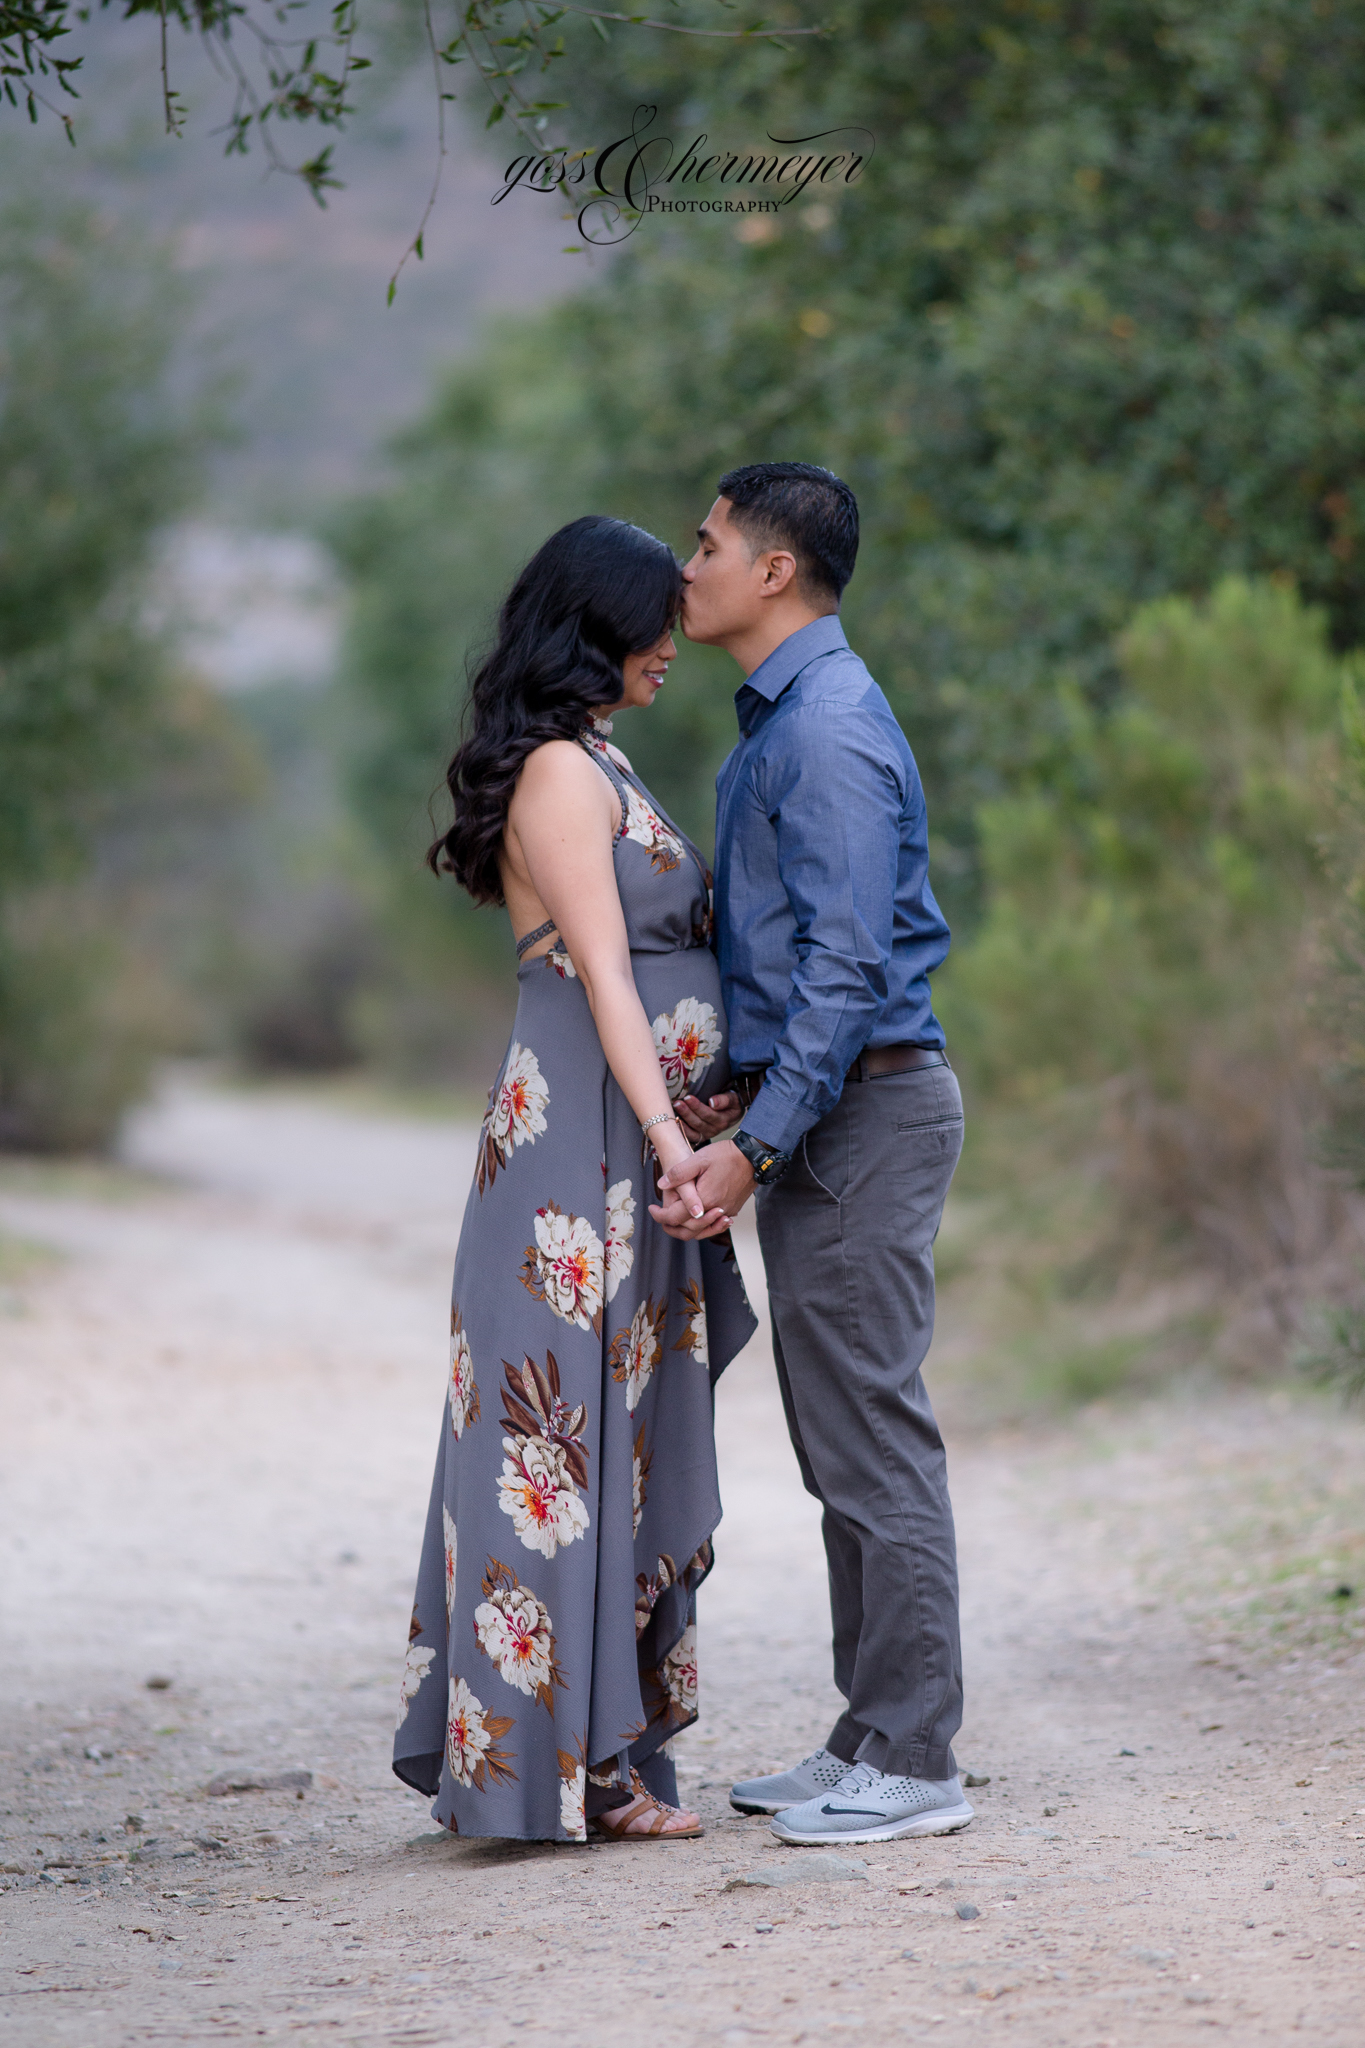 Mission Trails Maternity Photographer Goss and Hermeyer Photography-1.jpg